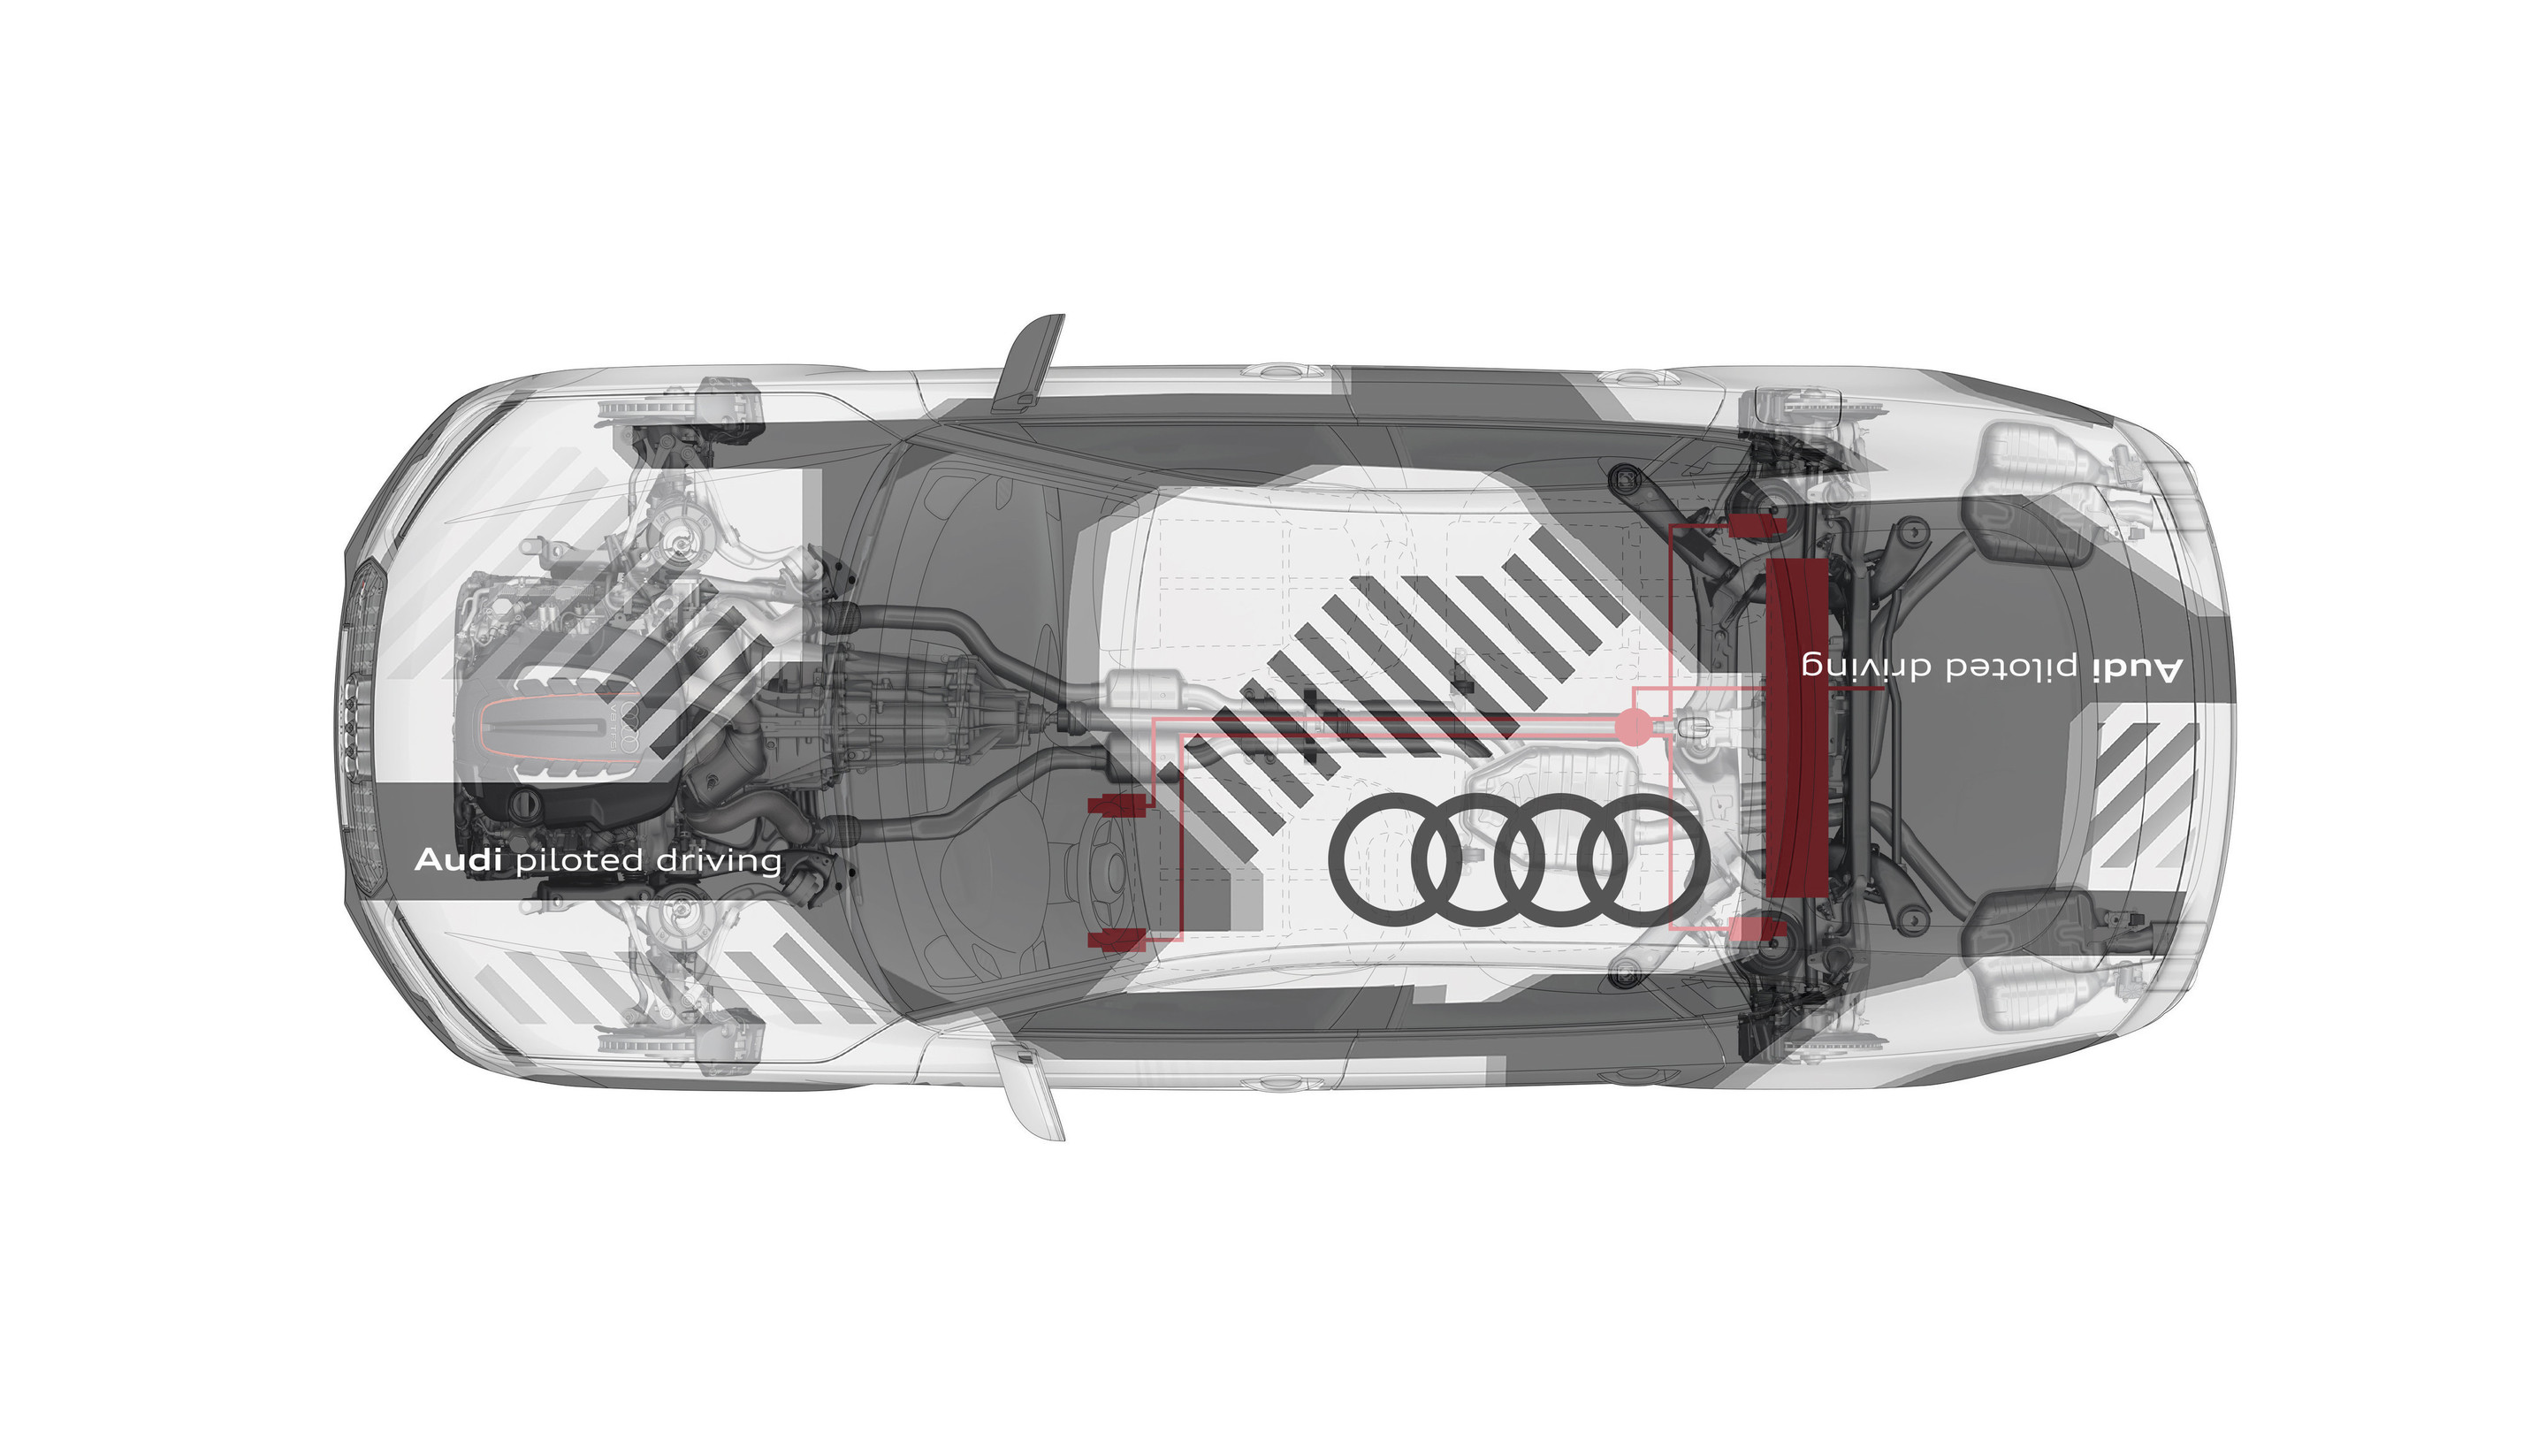 Audi piloted driving lab